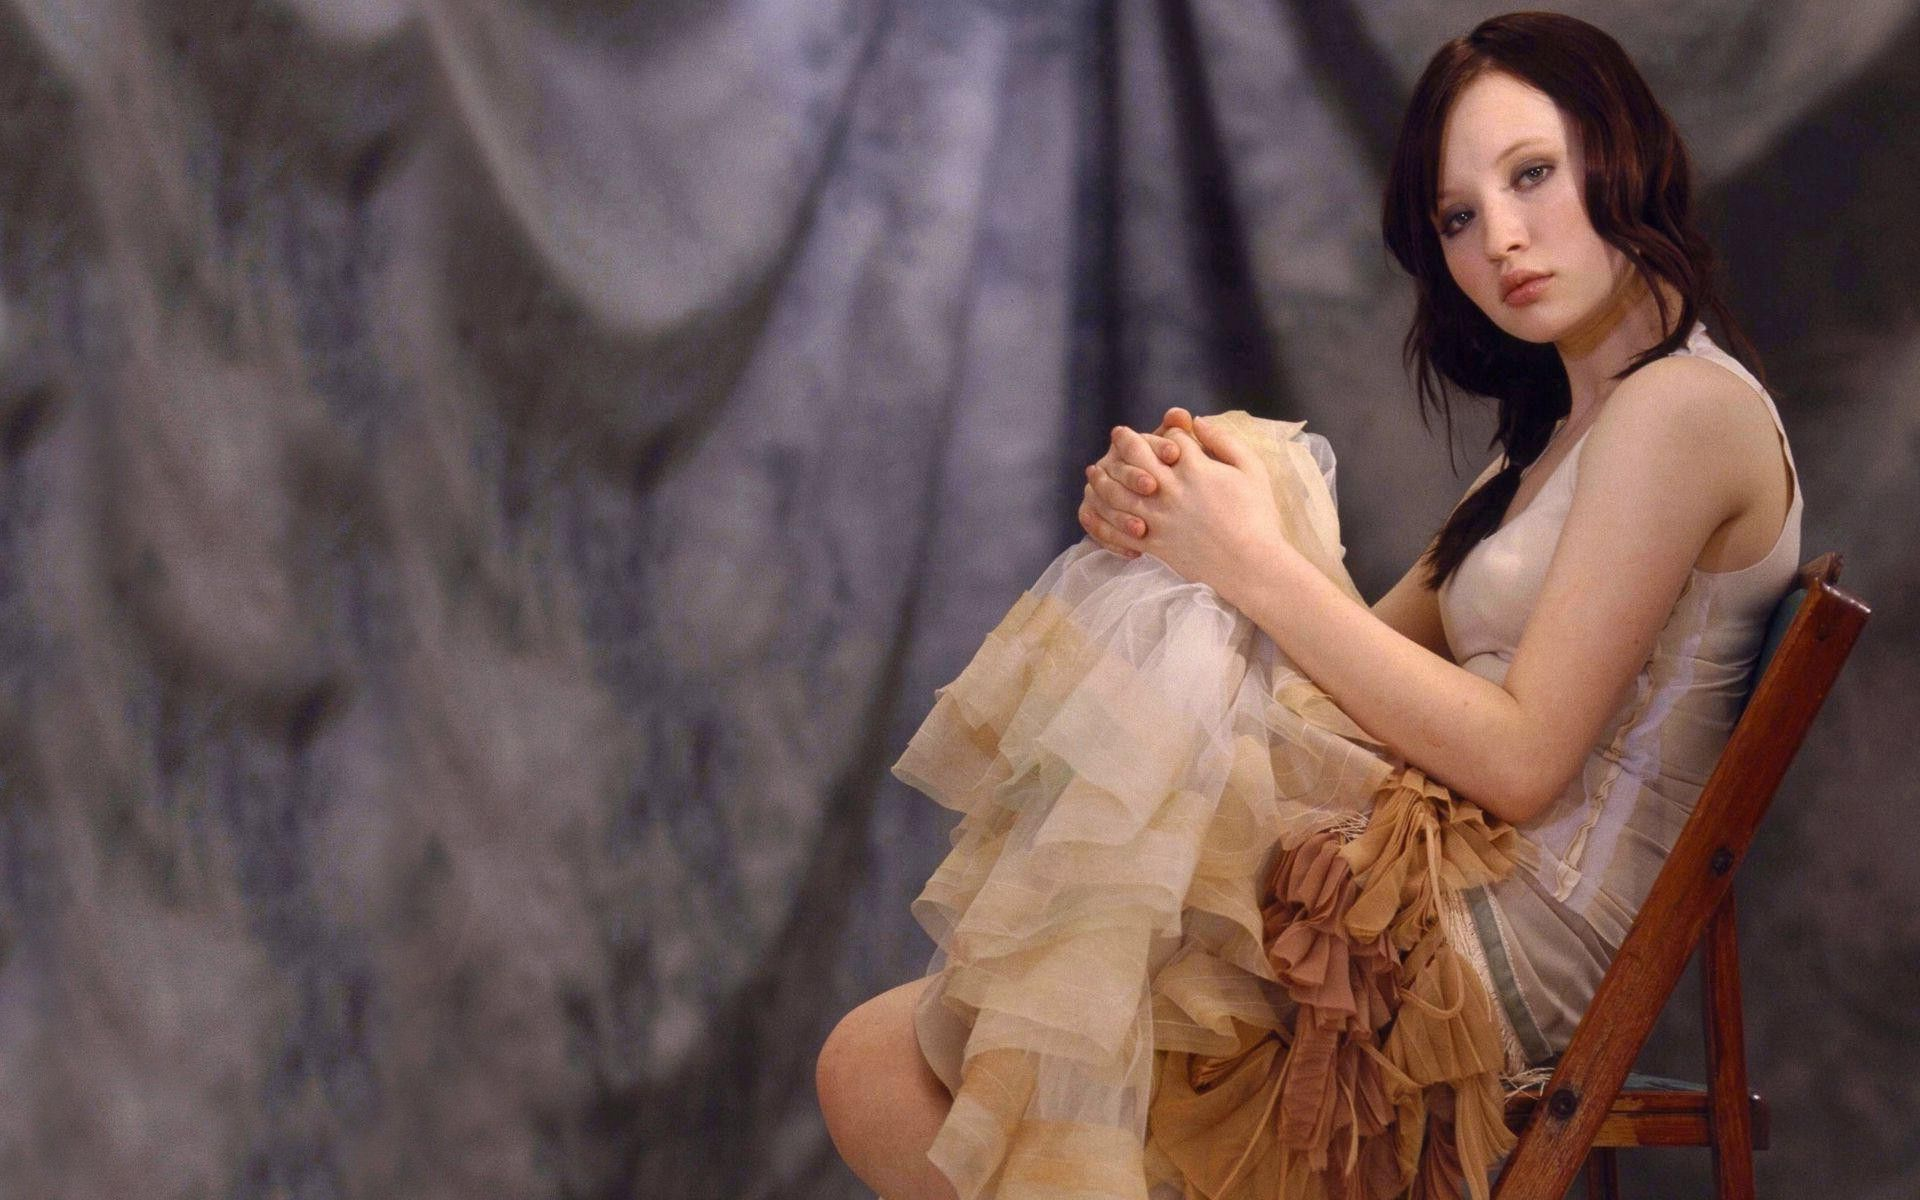 emily browning | emily browning wallpaper 1920x1200 | eccentric